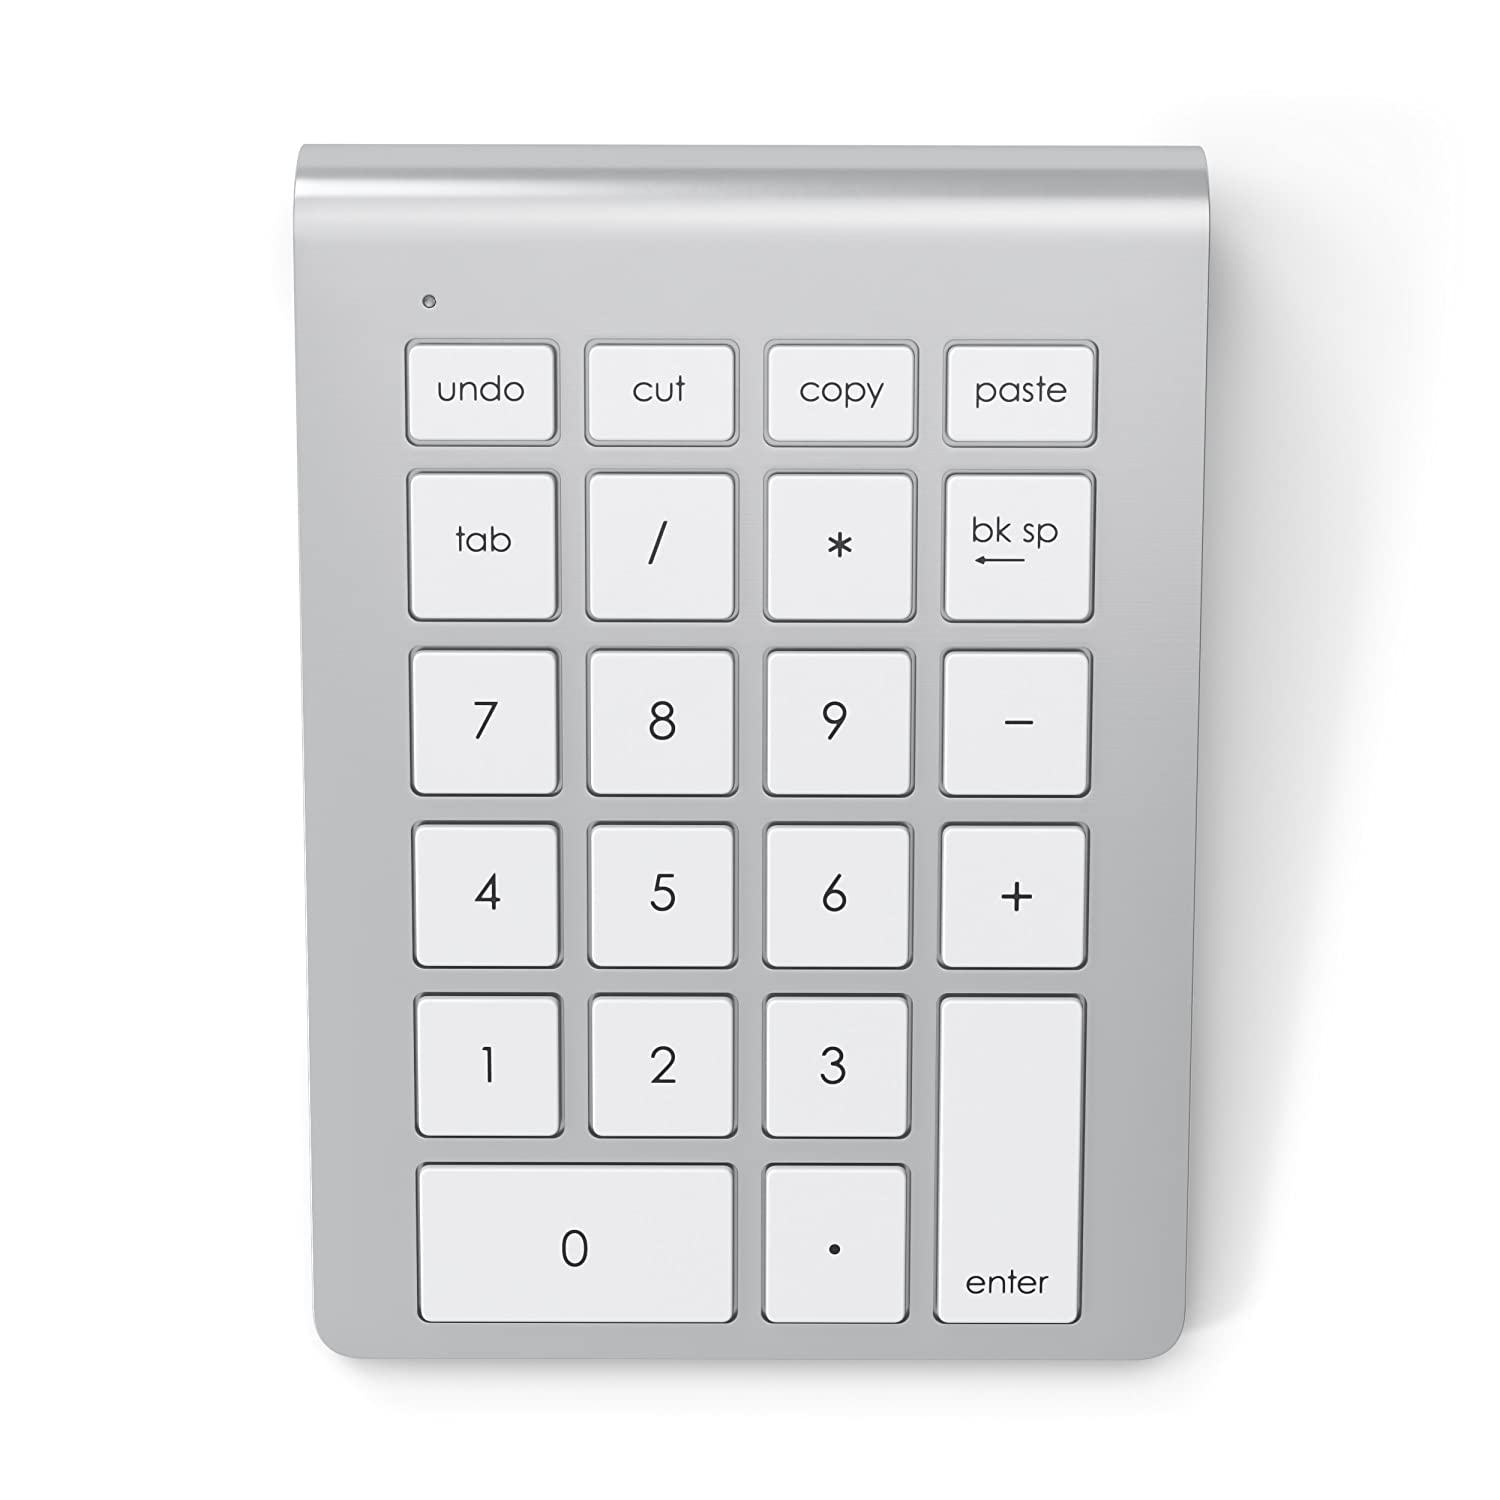 Satechi Portable Aluminum Bluetooth Wireless 22-Key Keypad Keyboard Extension for Data Entry in Excel and Numbers with Keyboard Shortcuts (Cut, Copy, Paste, Undo) - Compatible with Laptops, Macs, PCs (Silver) ST-AWKP